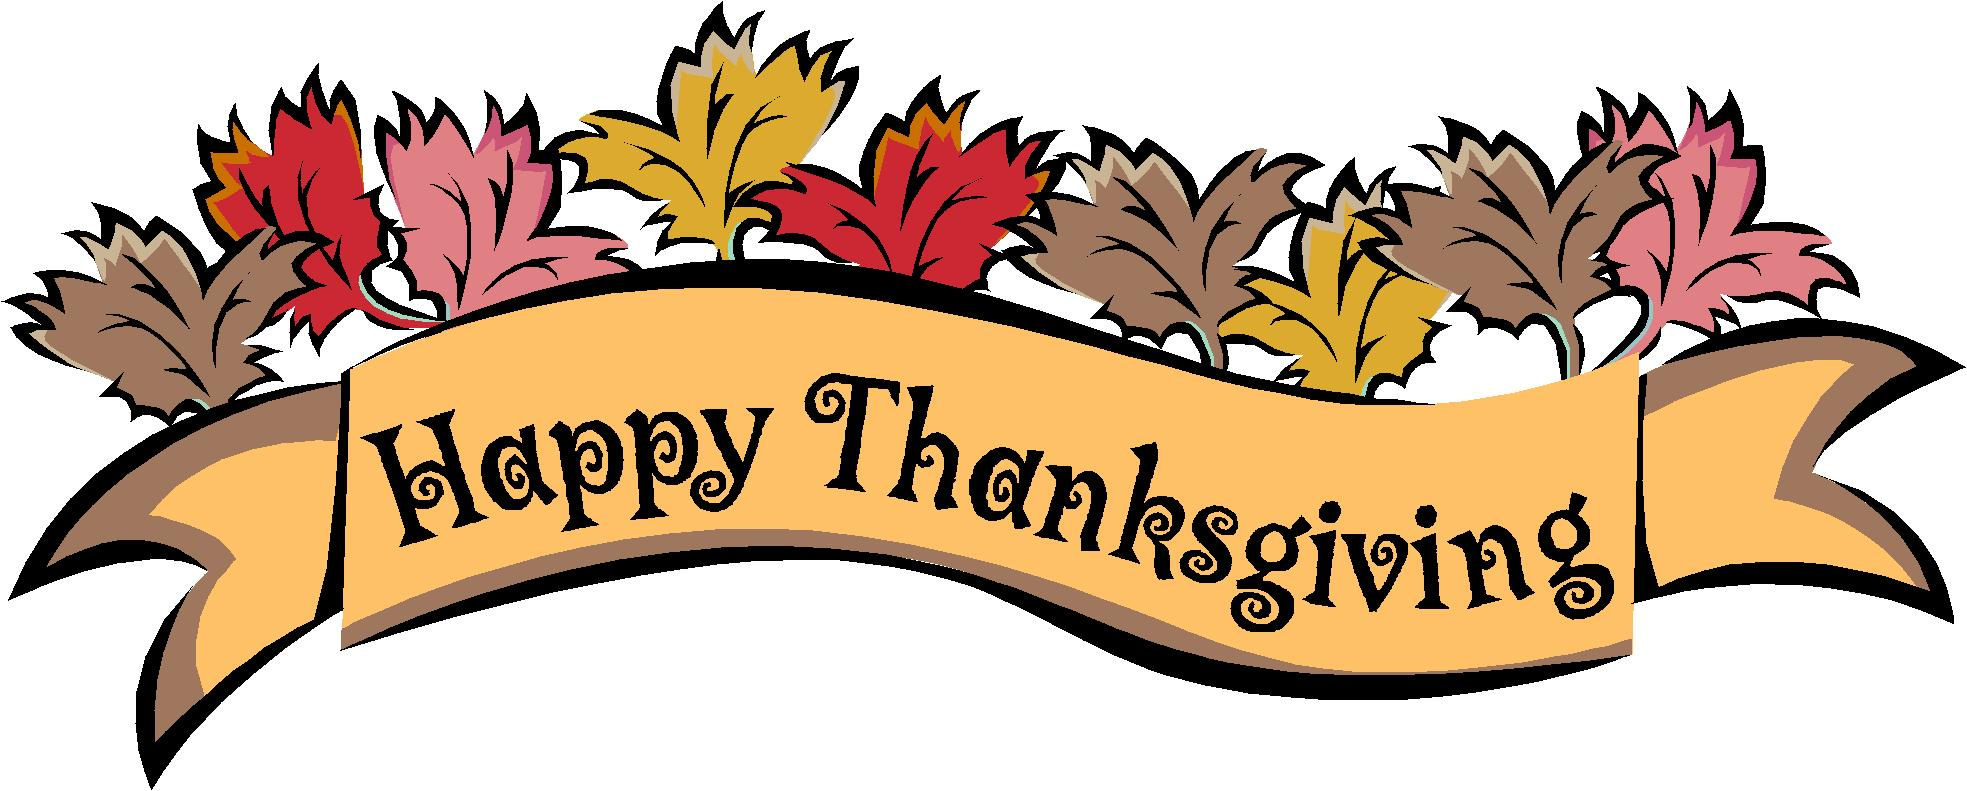 clip art black and white download Brunch clipart thanksgiving. Free download best on